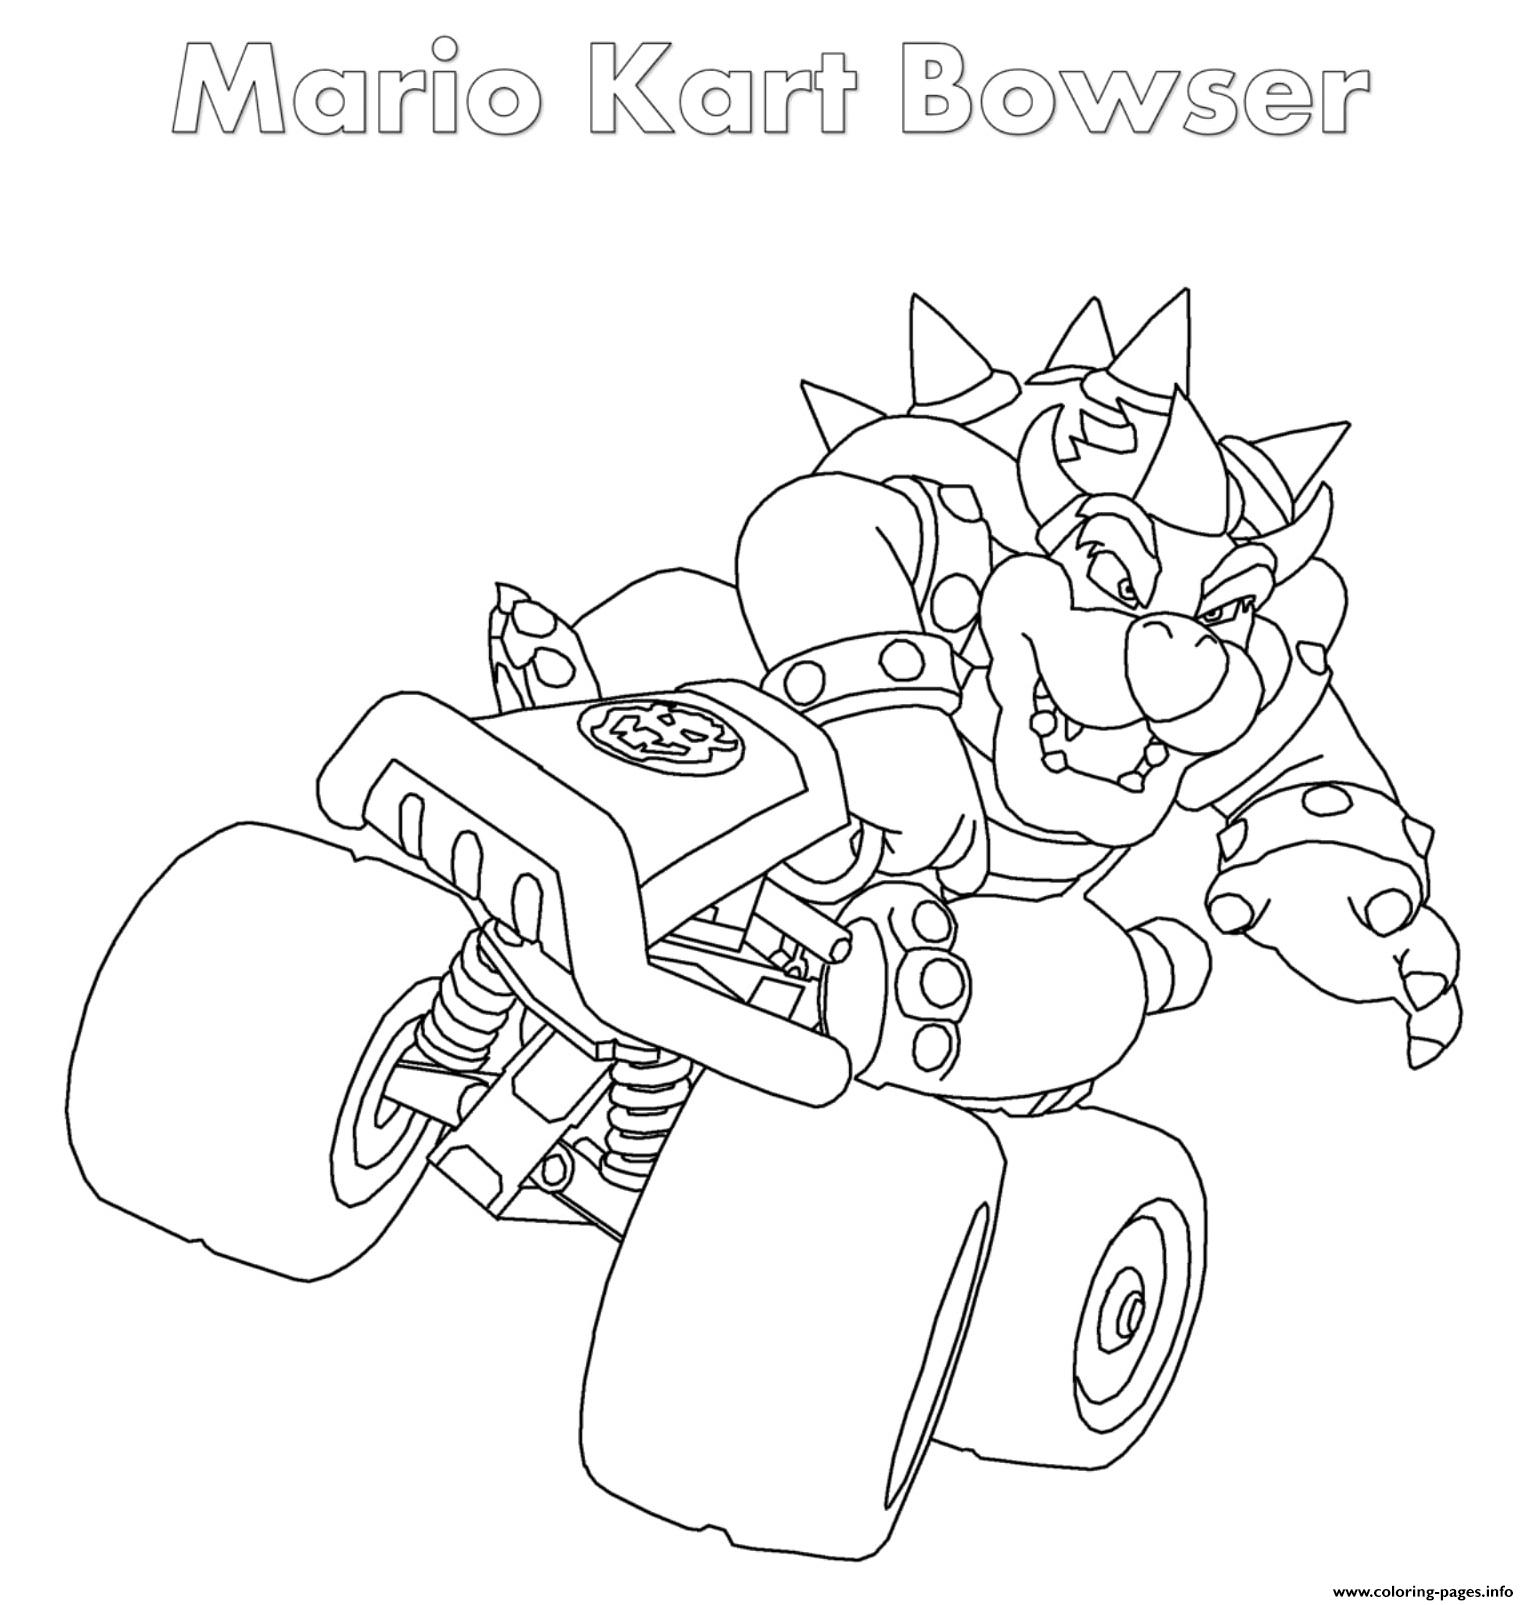 Bowser Mario Kart Nintendo Coloring Pages Printable